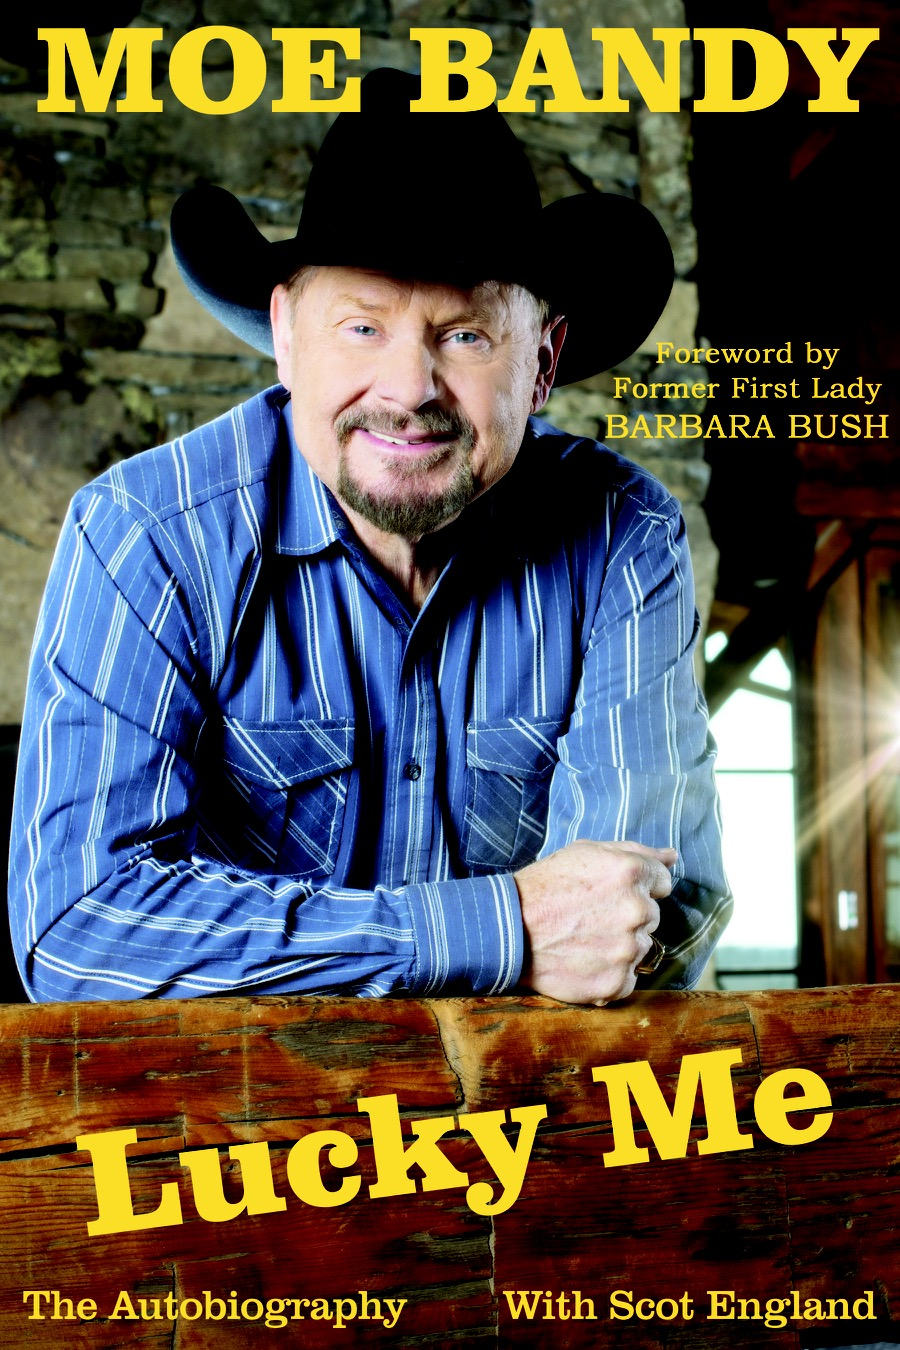 Moe Bandy autobiography 'Lucky Me' available January 26